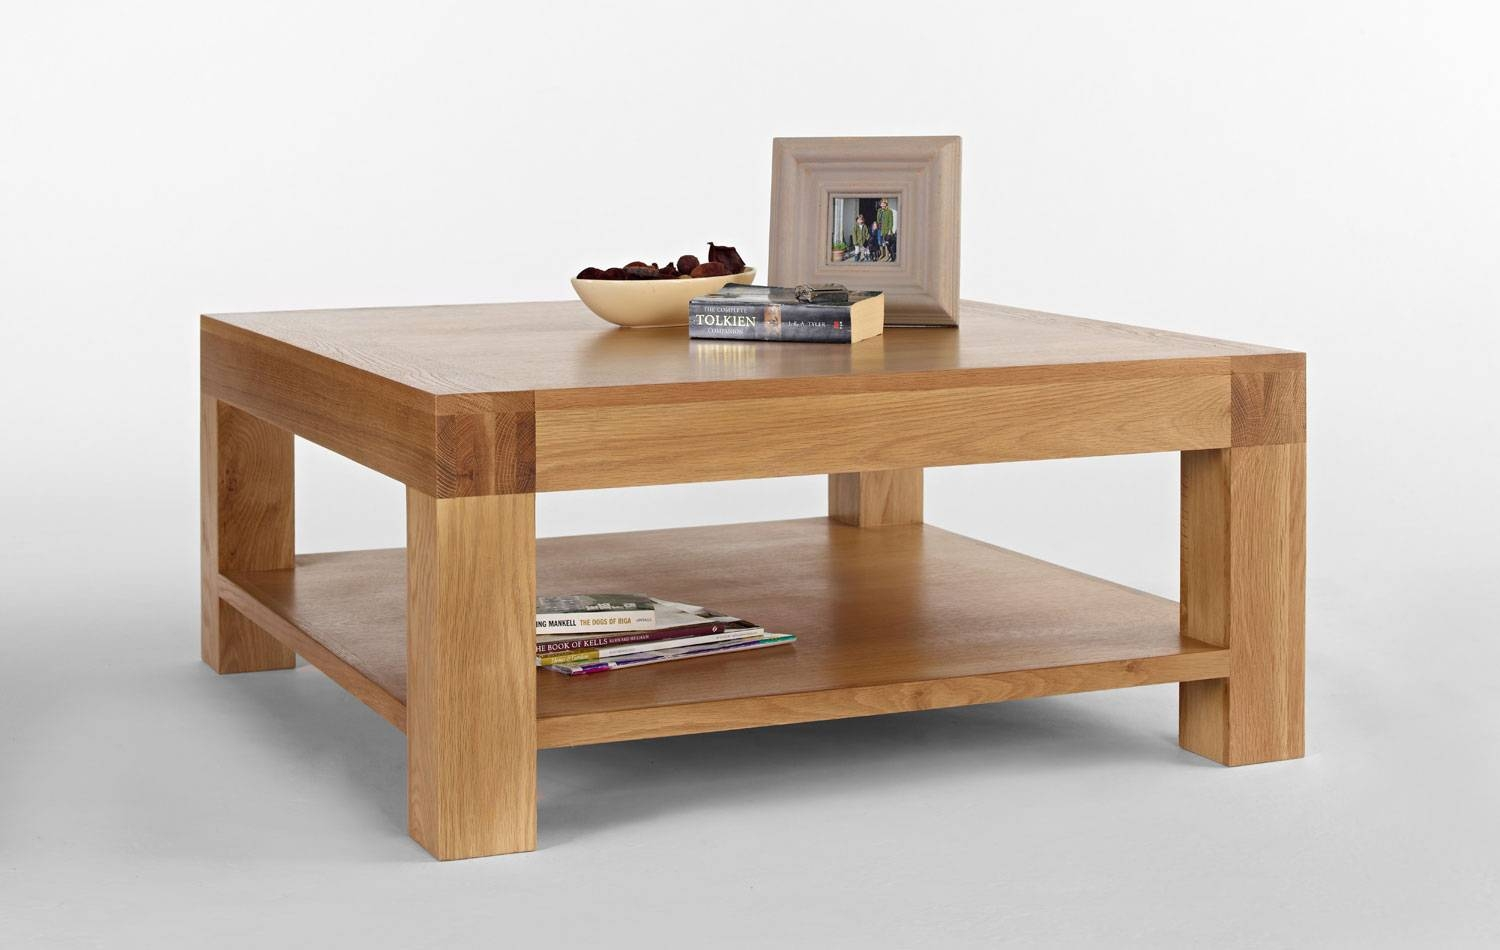 Square Light Oak Coffee Table - Light Santana Oak within Large Square Oak Coffee Tables (Image 14 of 15)